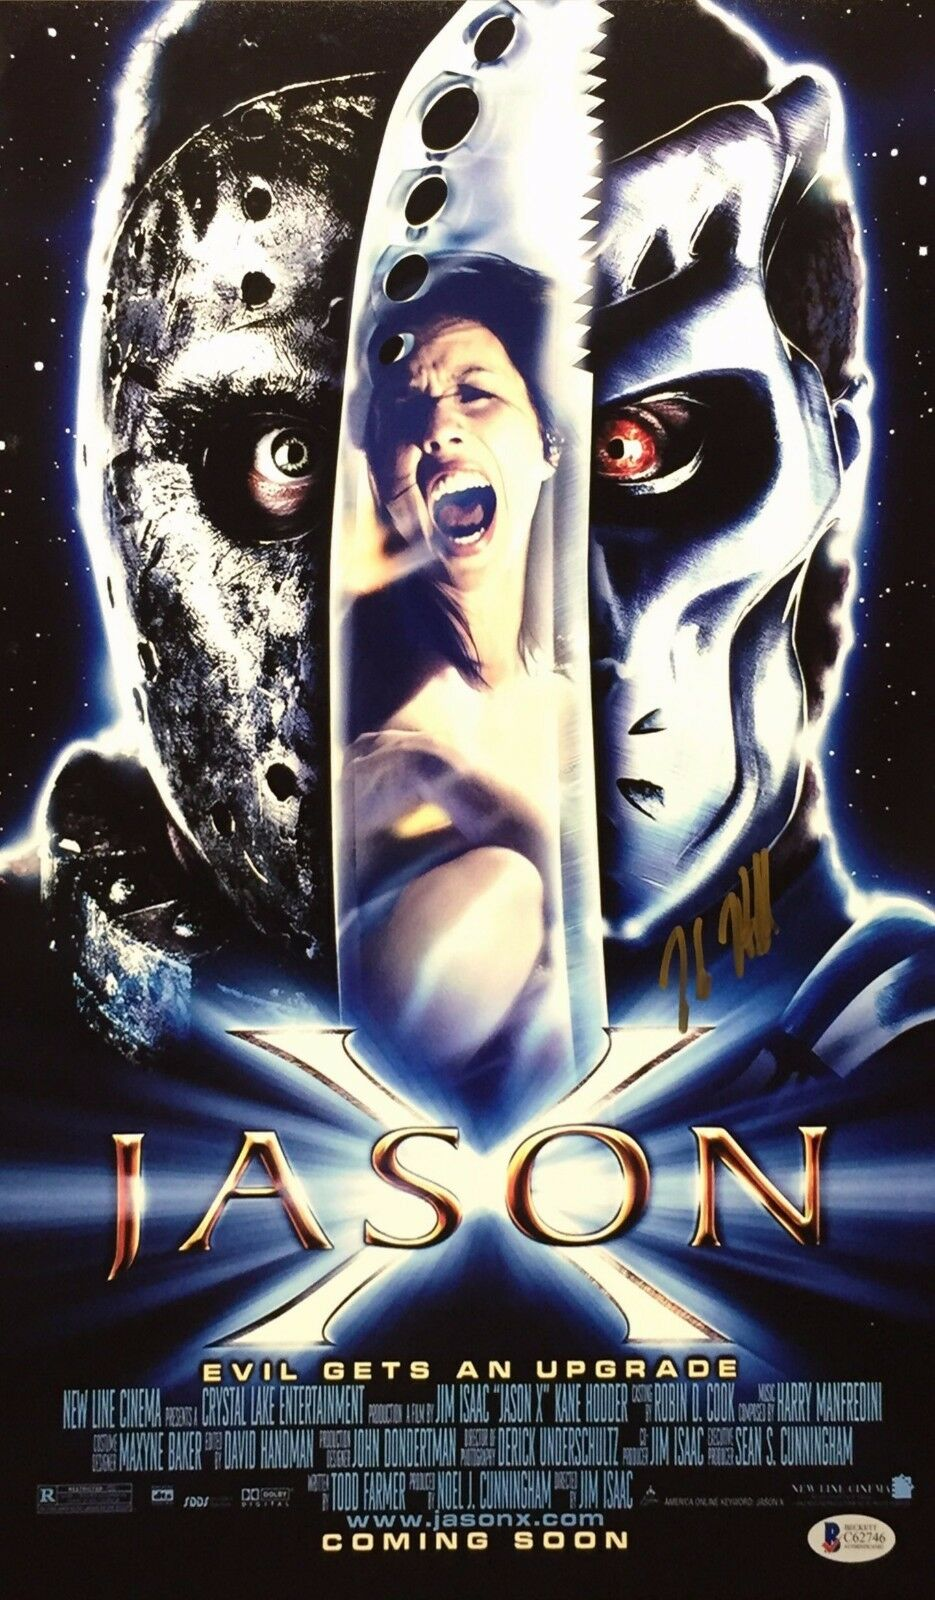 Kane Hodder Signed Jason 'Evil Gets An Upgrade' 11x17 Photo BAS Beckett C62746